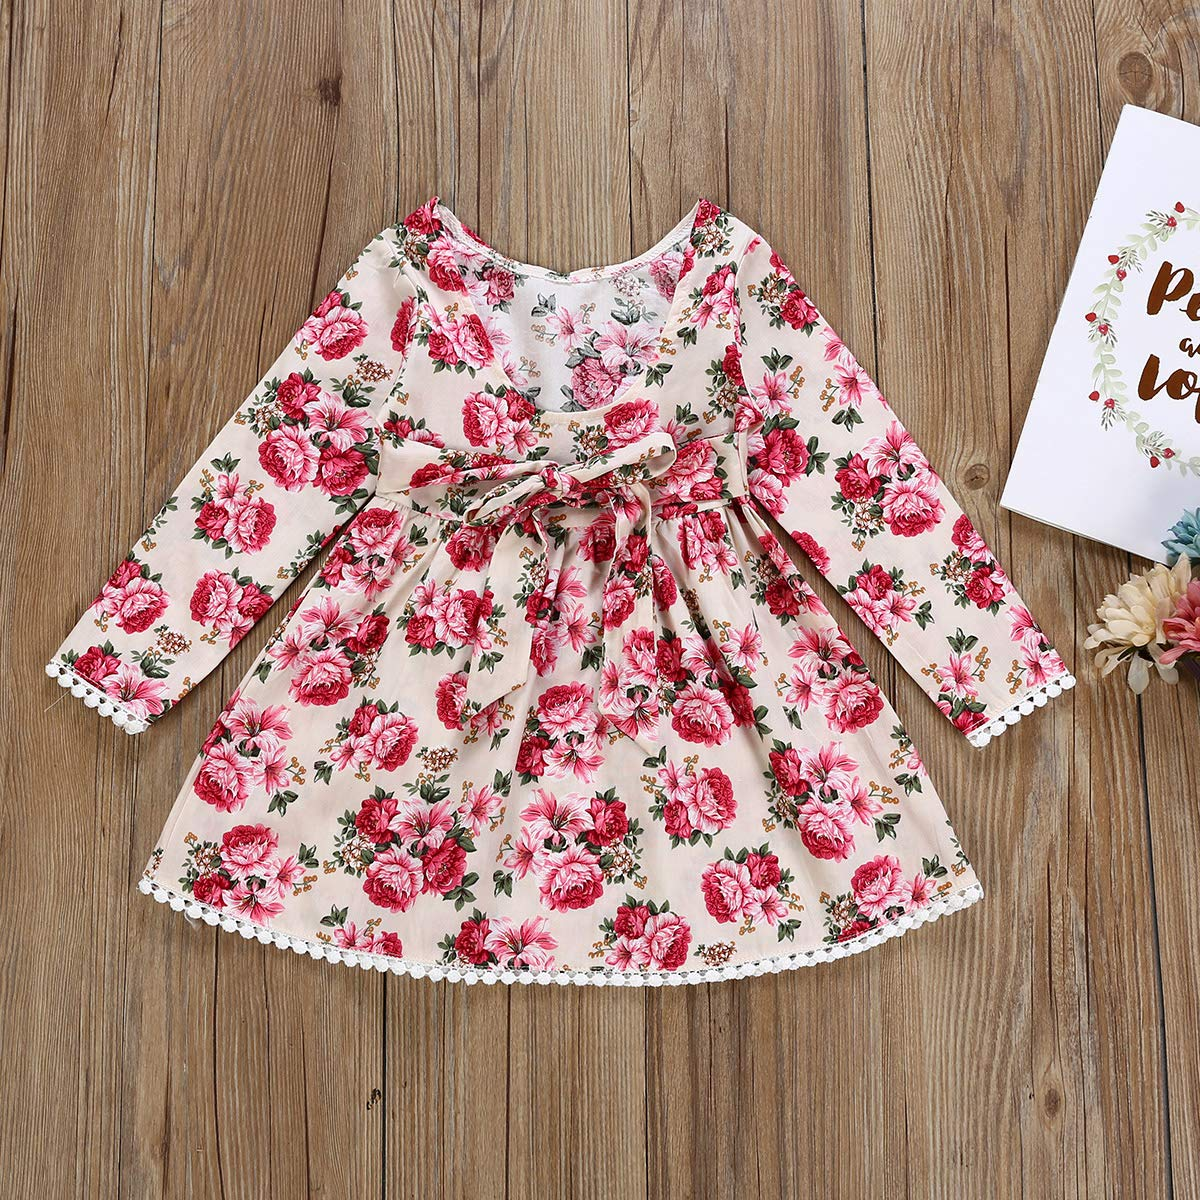 Borlai Kid Girl Dress Floral Tassel Long Sleeve Princess Edged Lace Skirt